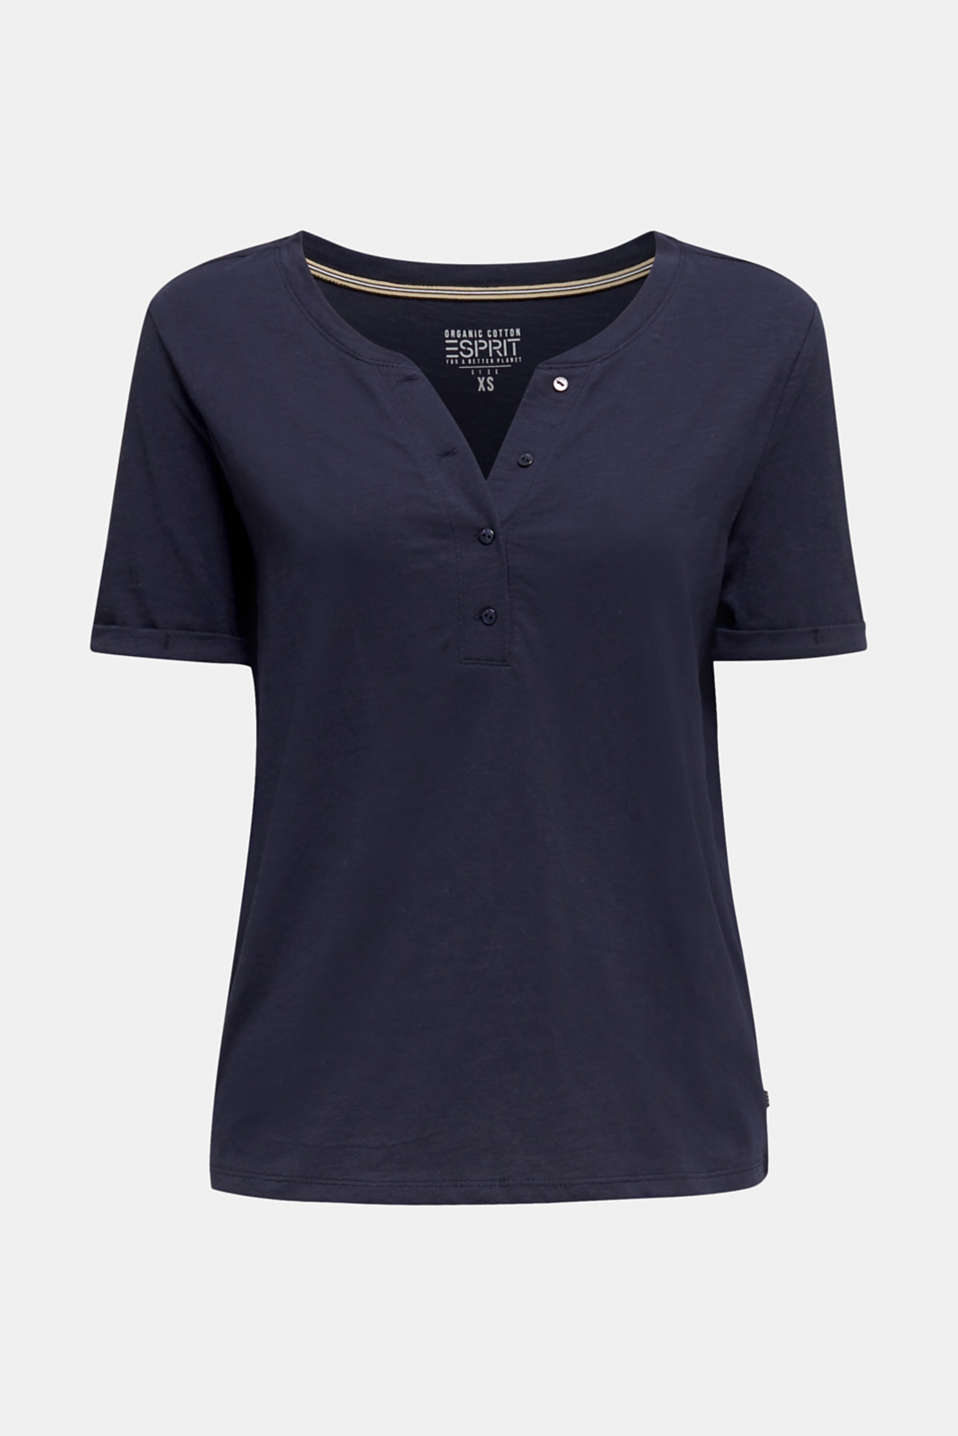 100% cotton Henley T-shirt, NAVY, detail image number 6